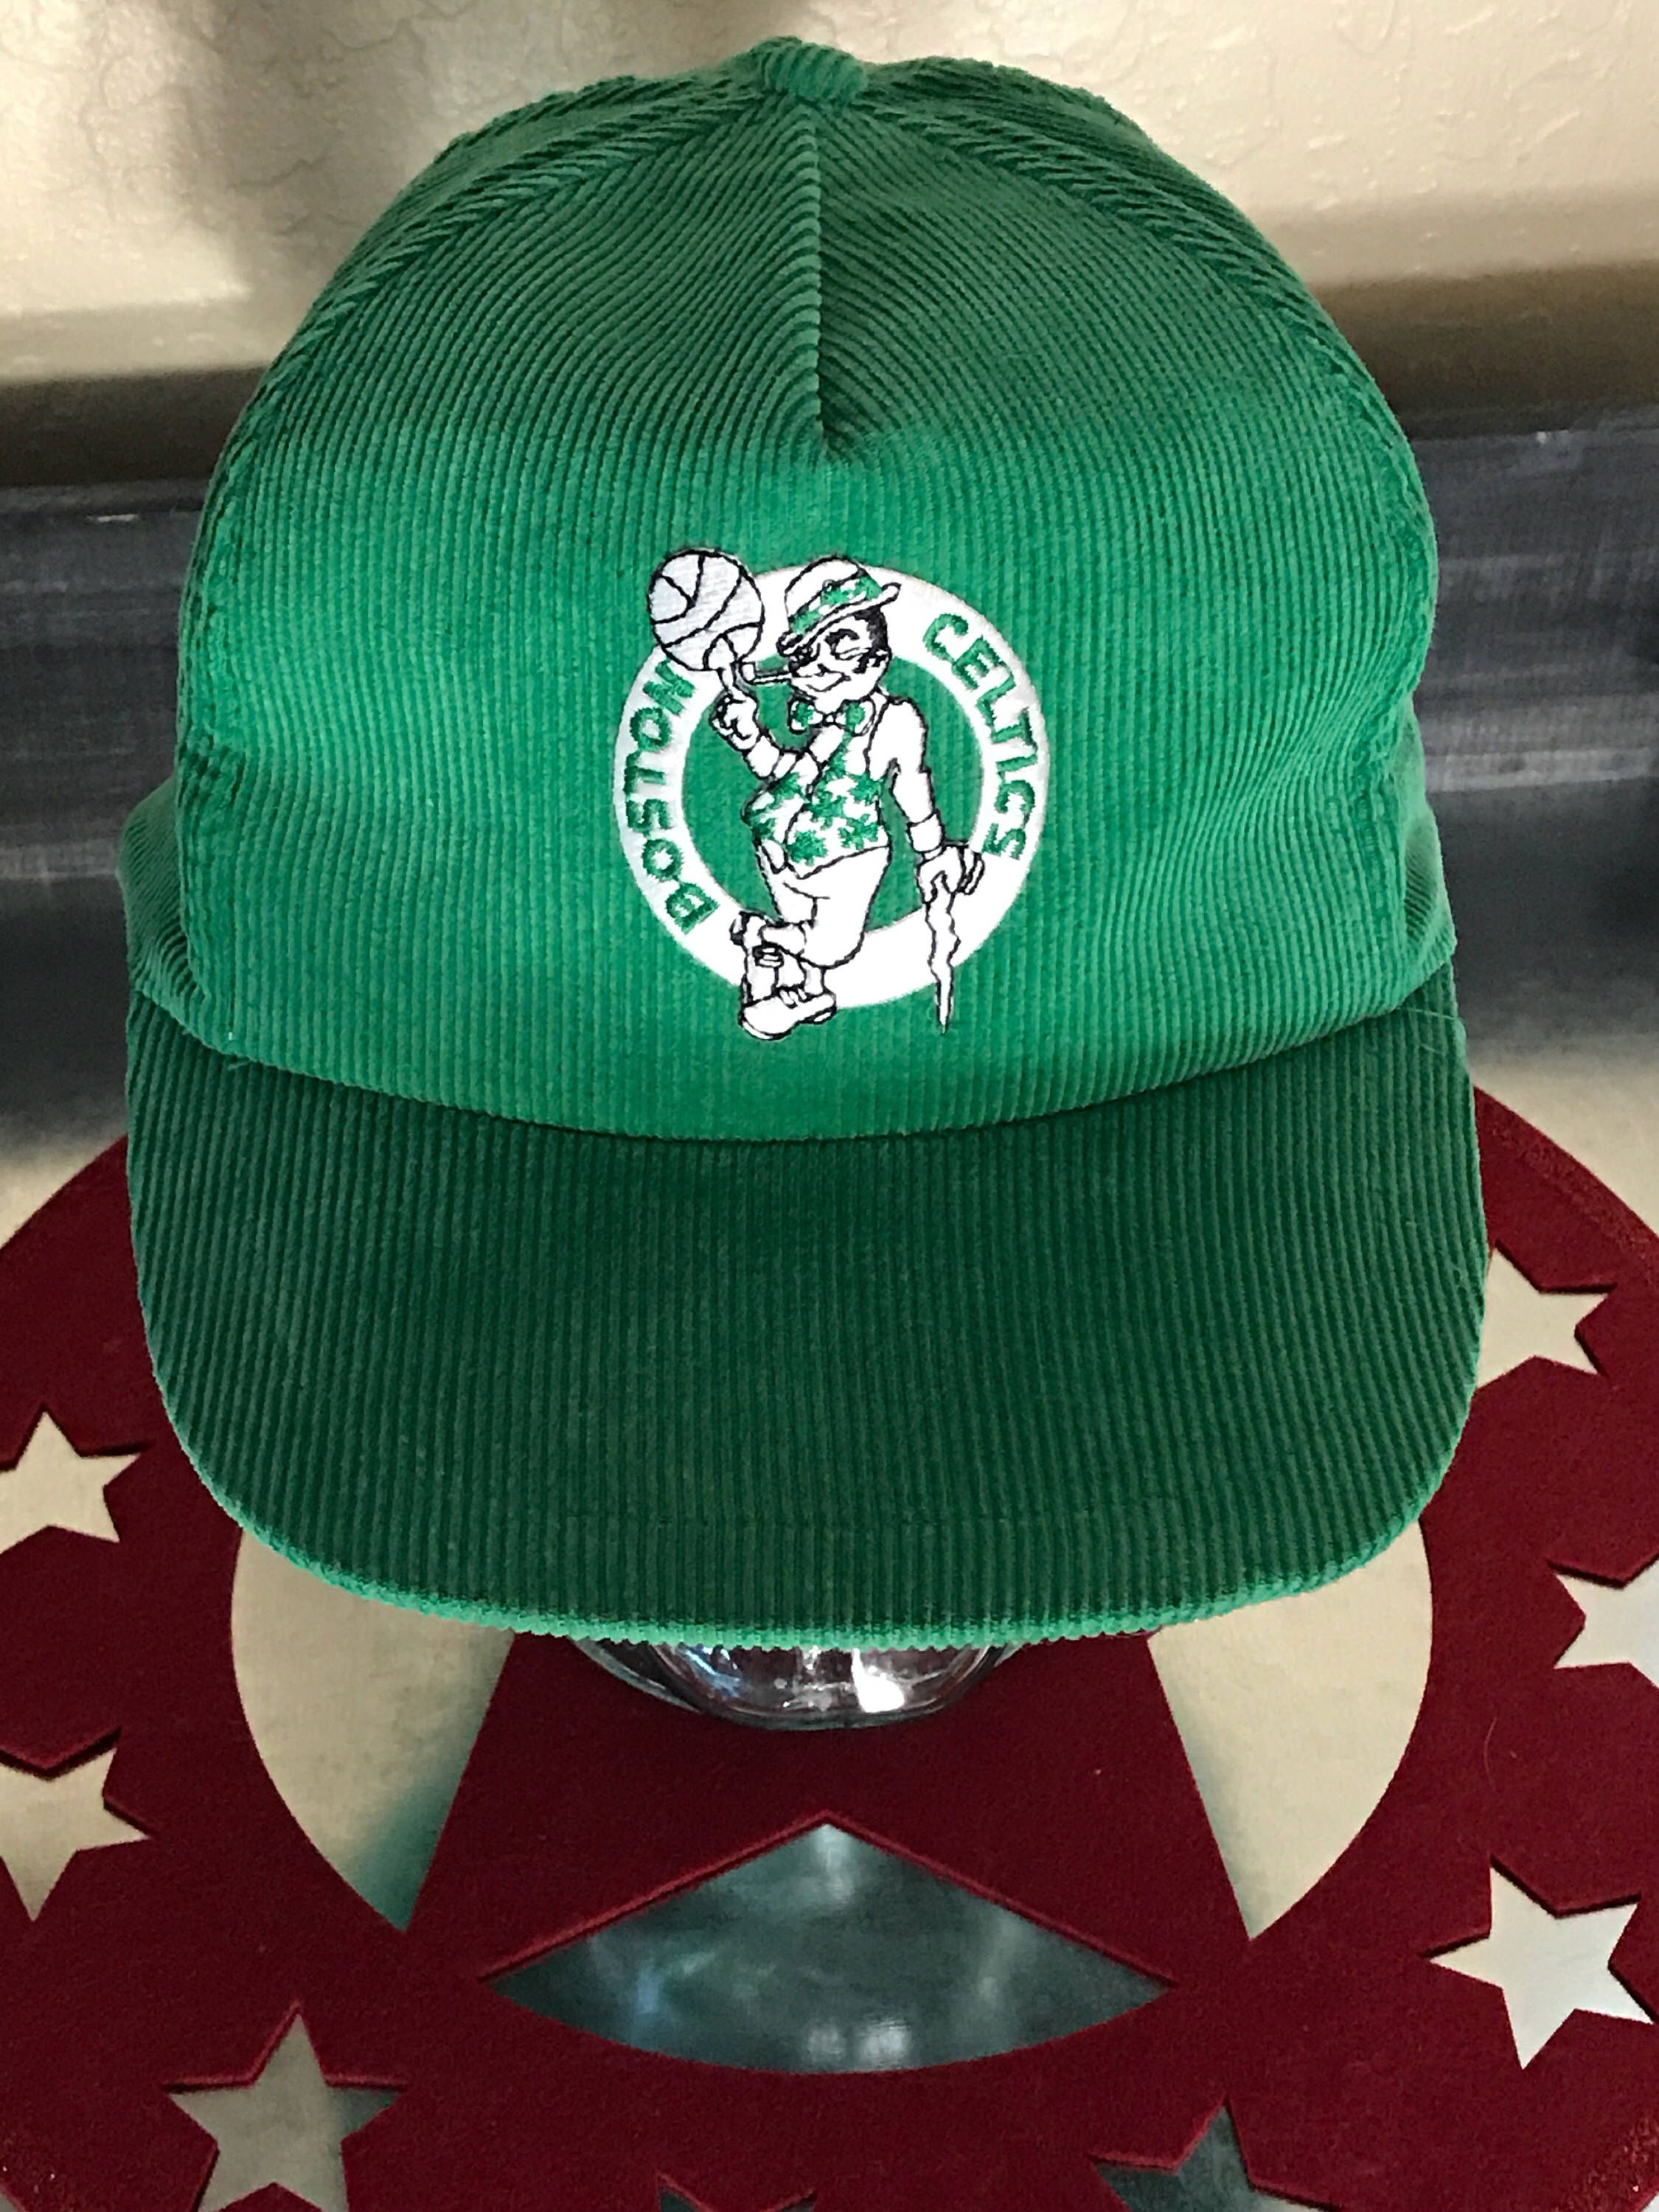 825804bd74b ... discount vintage boston celtics baseball hat cap with snapback . green  corduroy with flat bill.